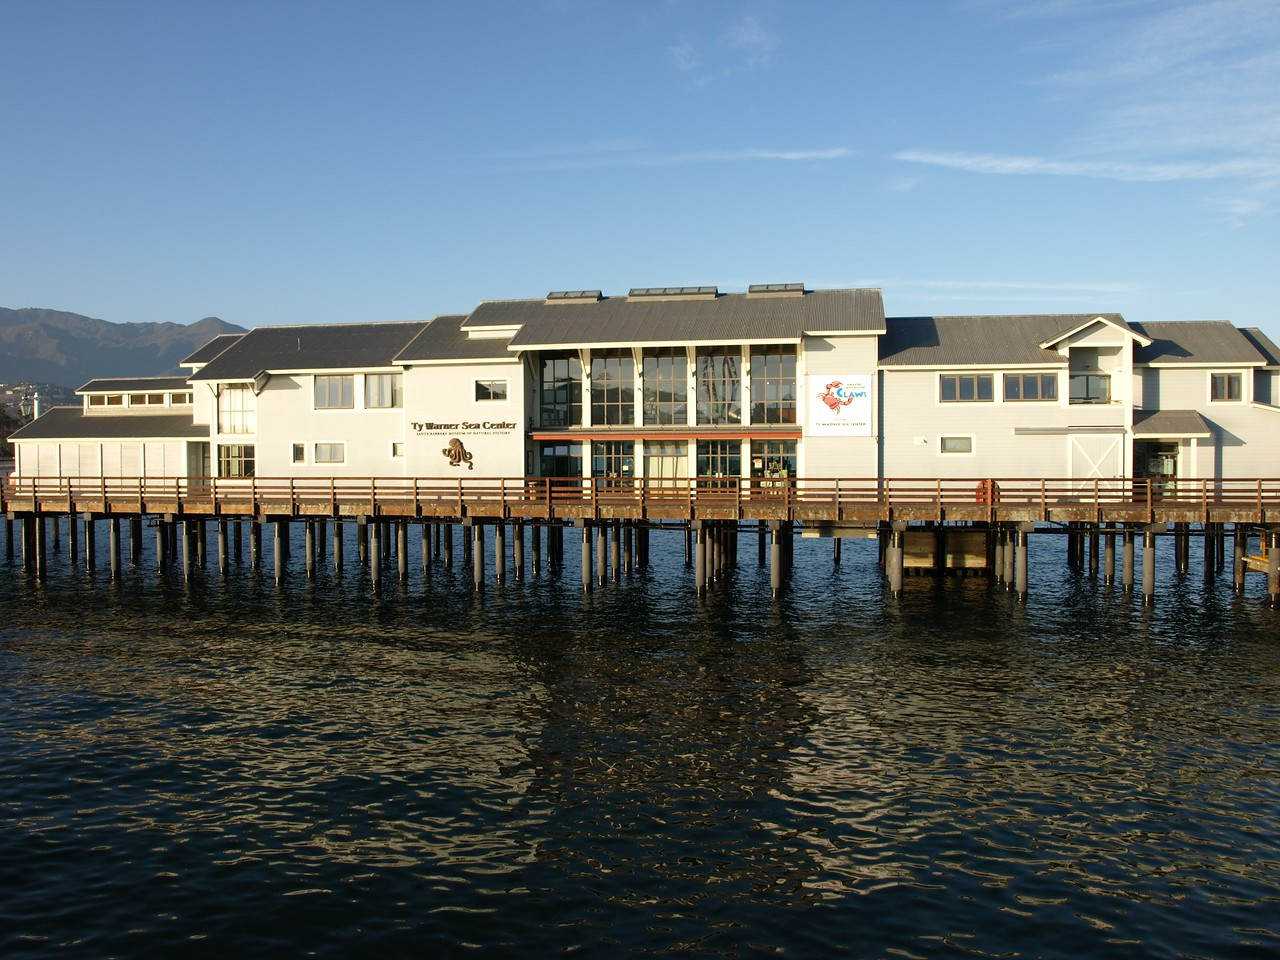 This is the Ty Waner Sea Center where we went on Saturday morning.